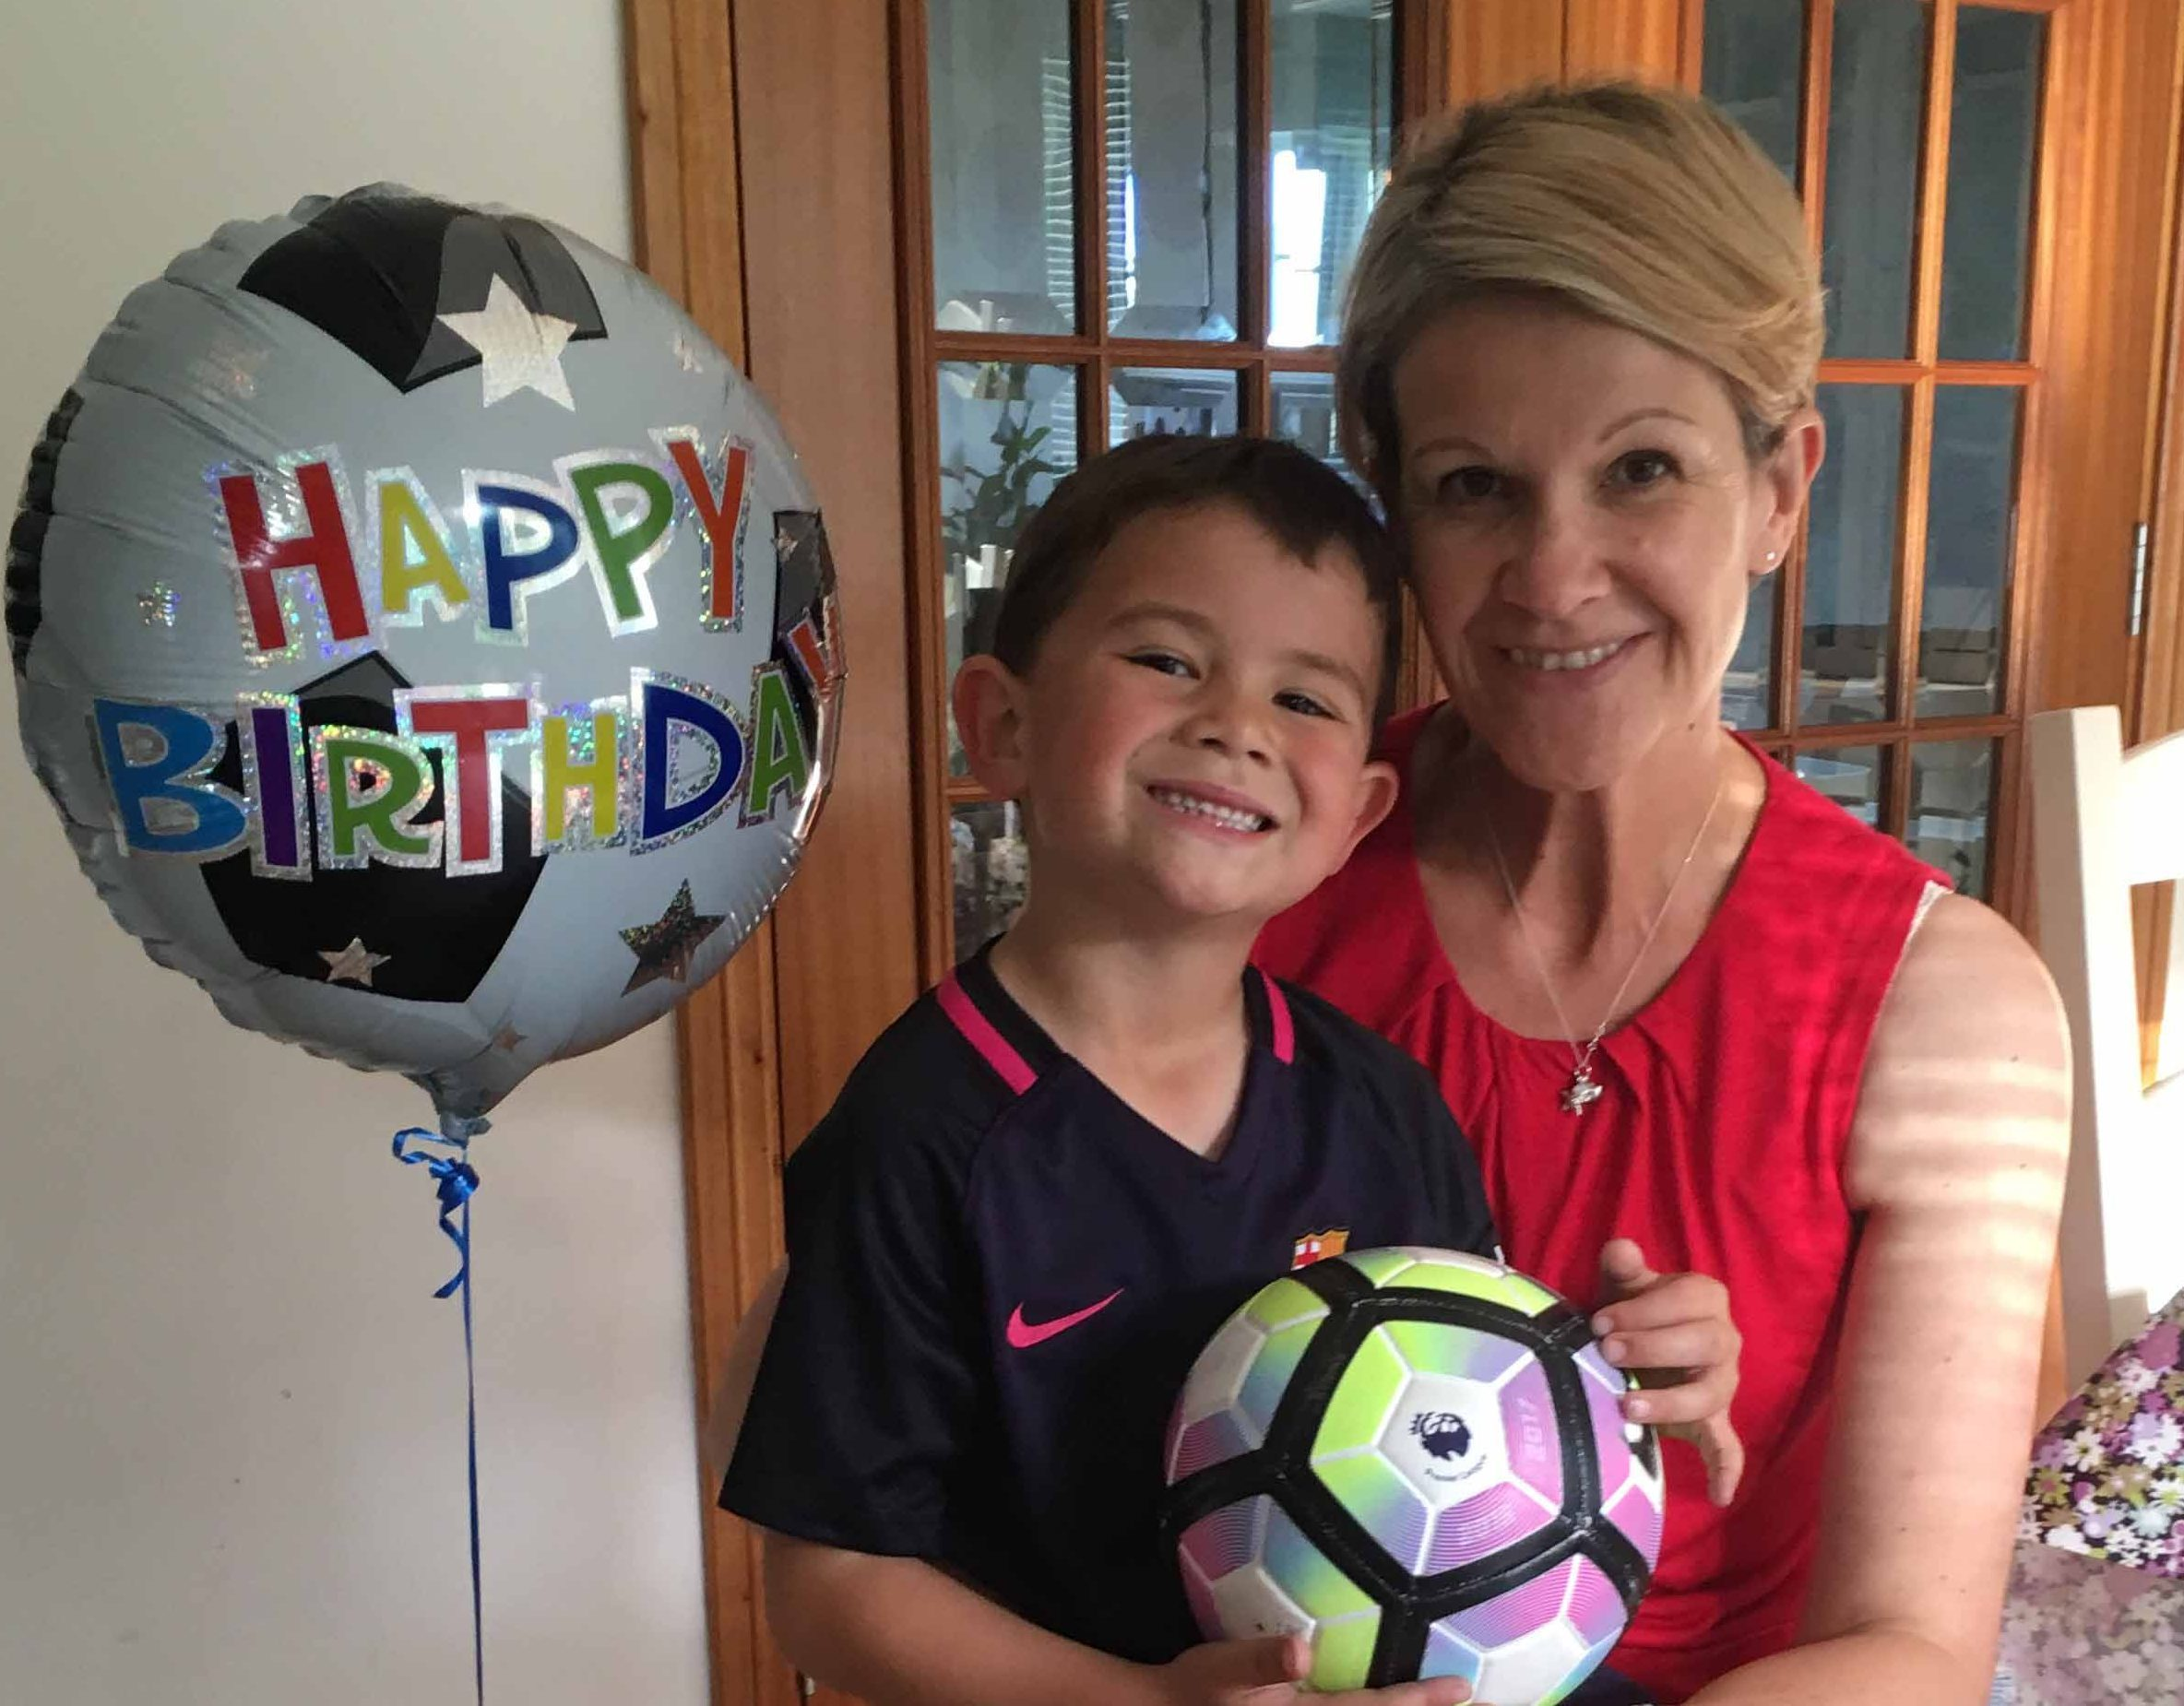 Anne Macleod Chang with her son Oliver, who is celebrating his sixth birthday